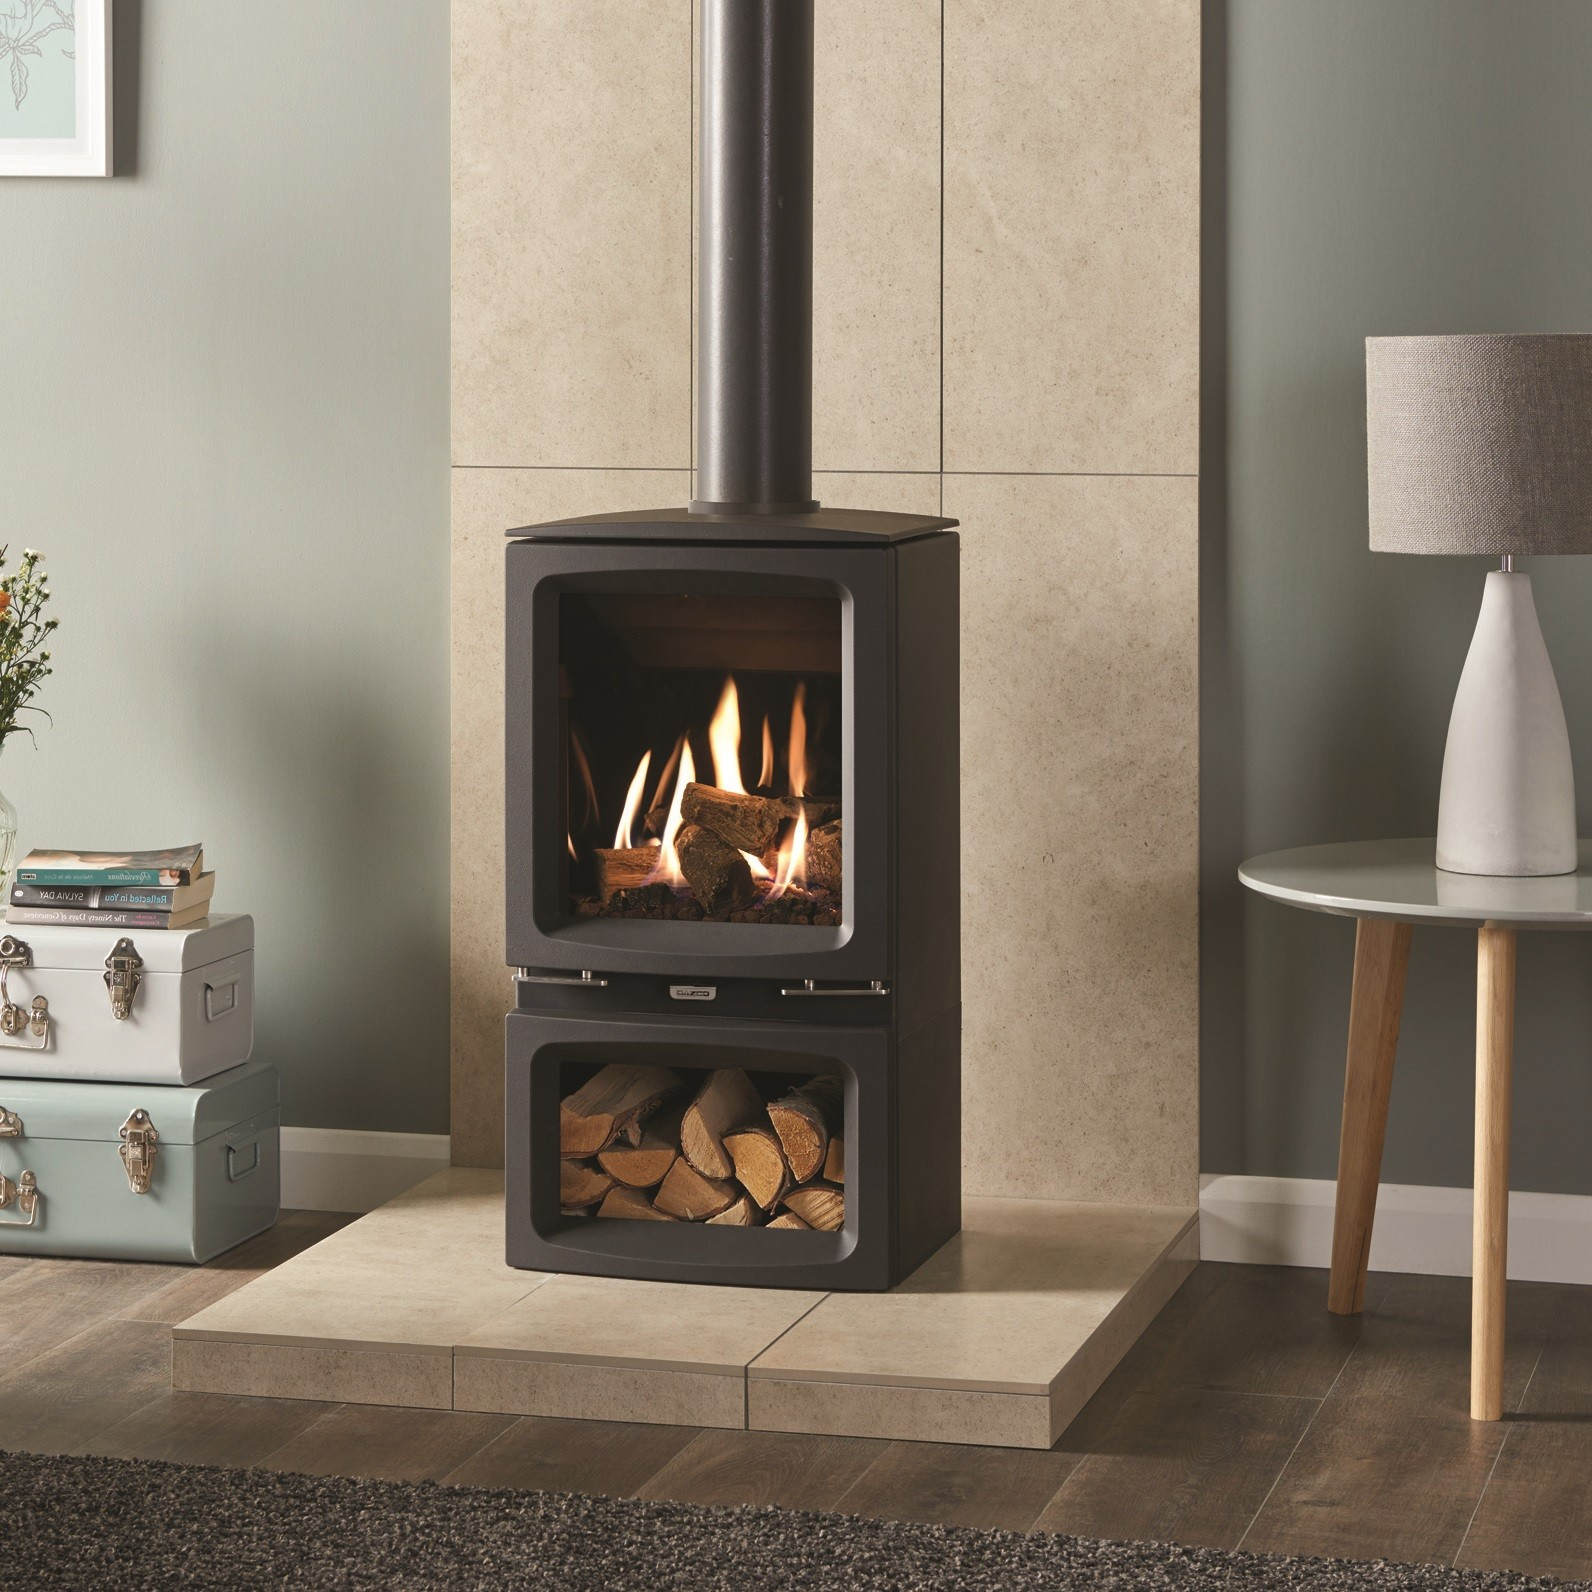 vogue contemporary chimneys fireplace company flue high convetional efficiency the for stoves gazco gas stove midi